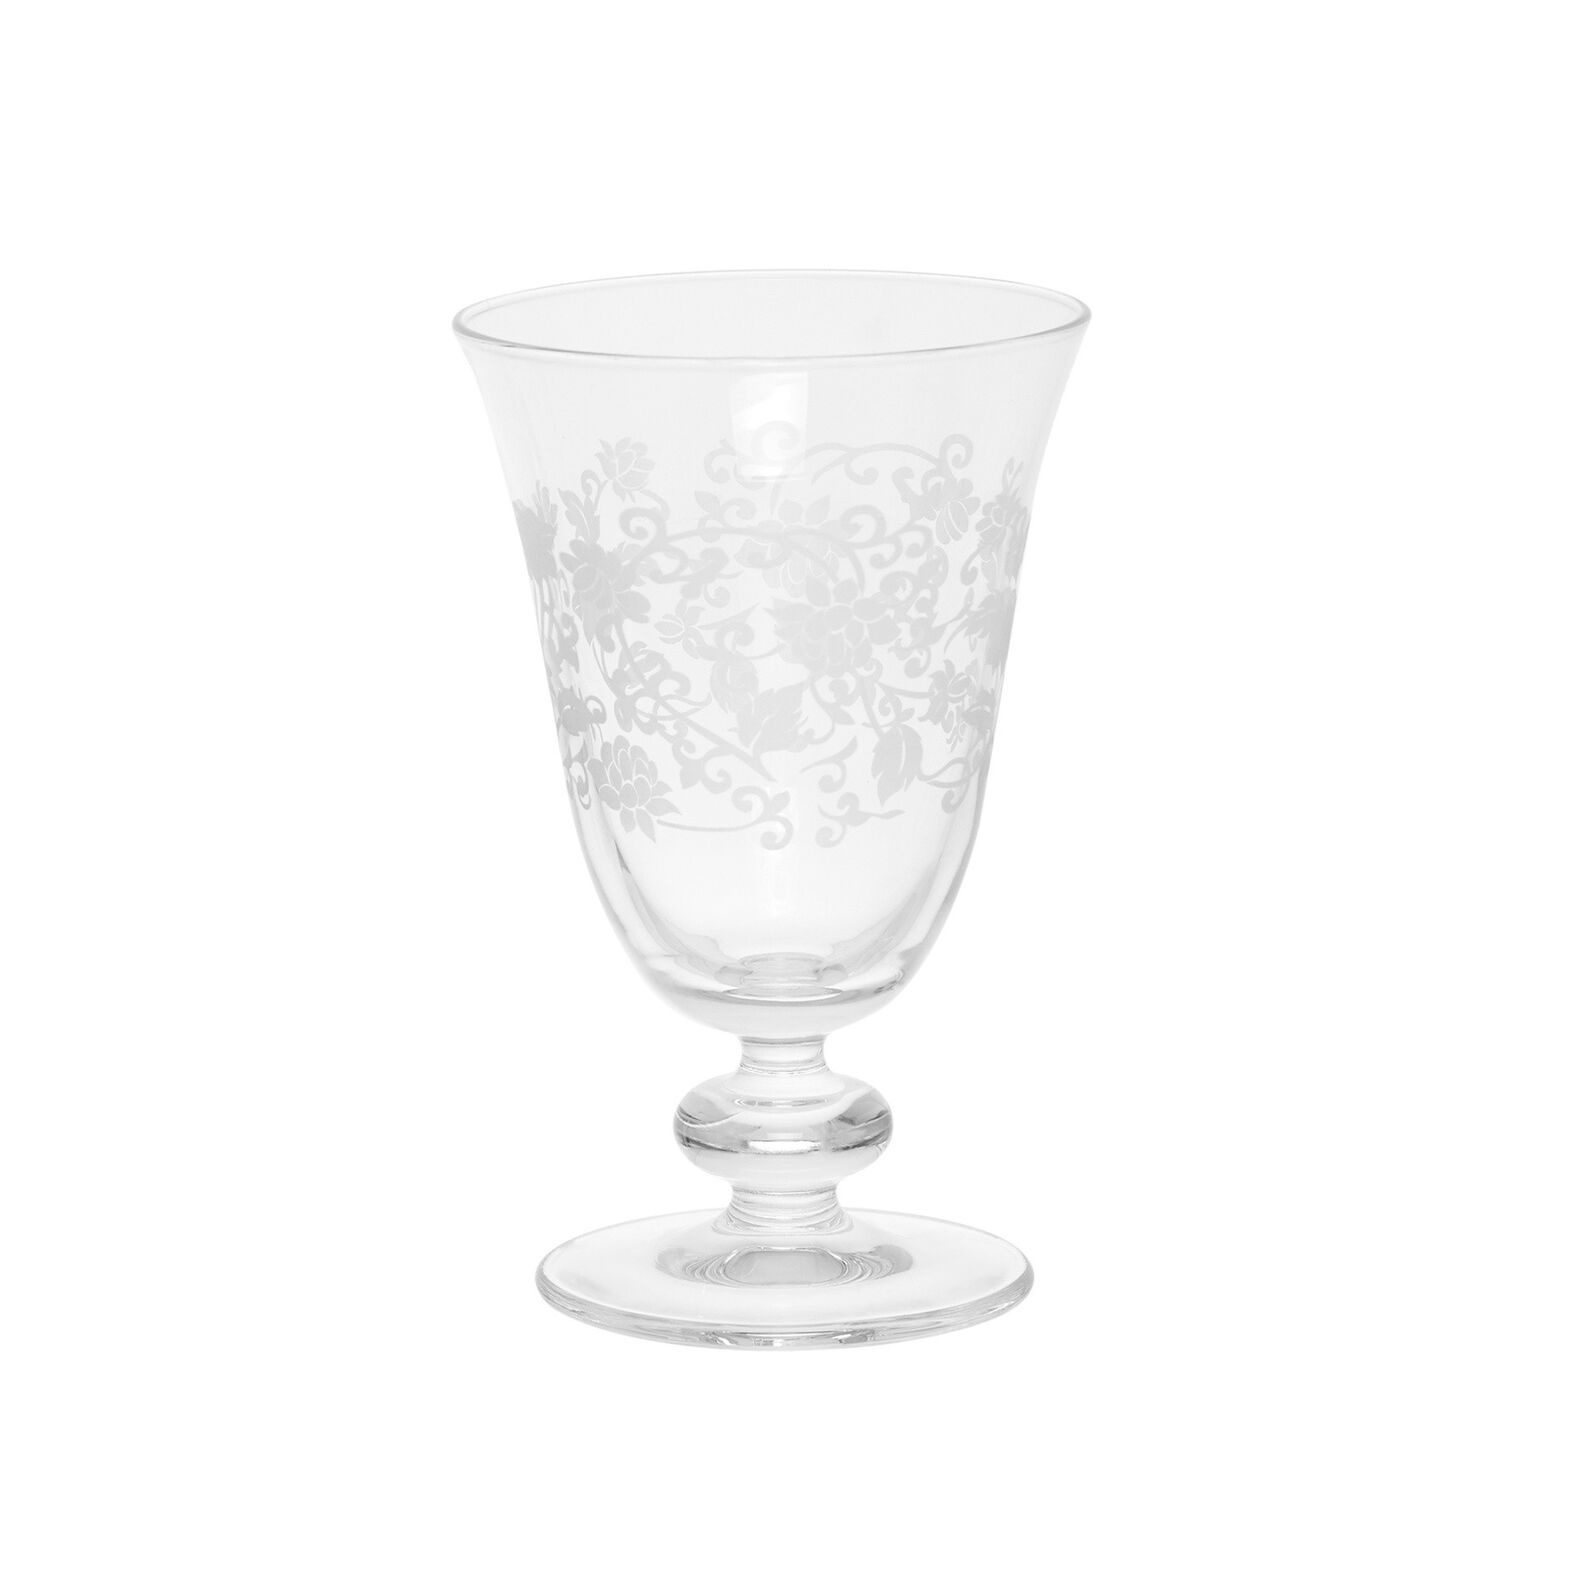 Provence glass water goblet